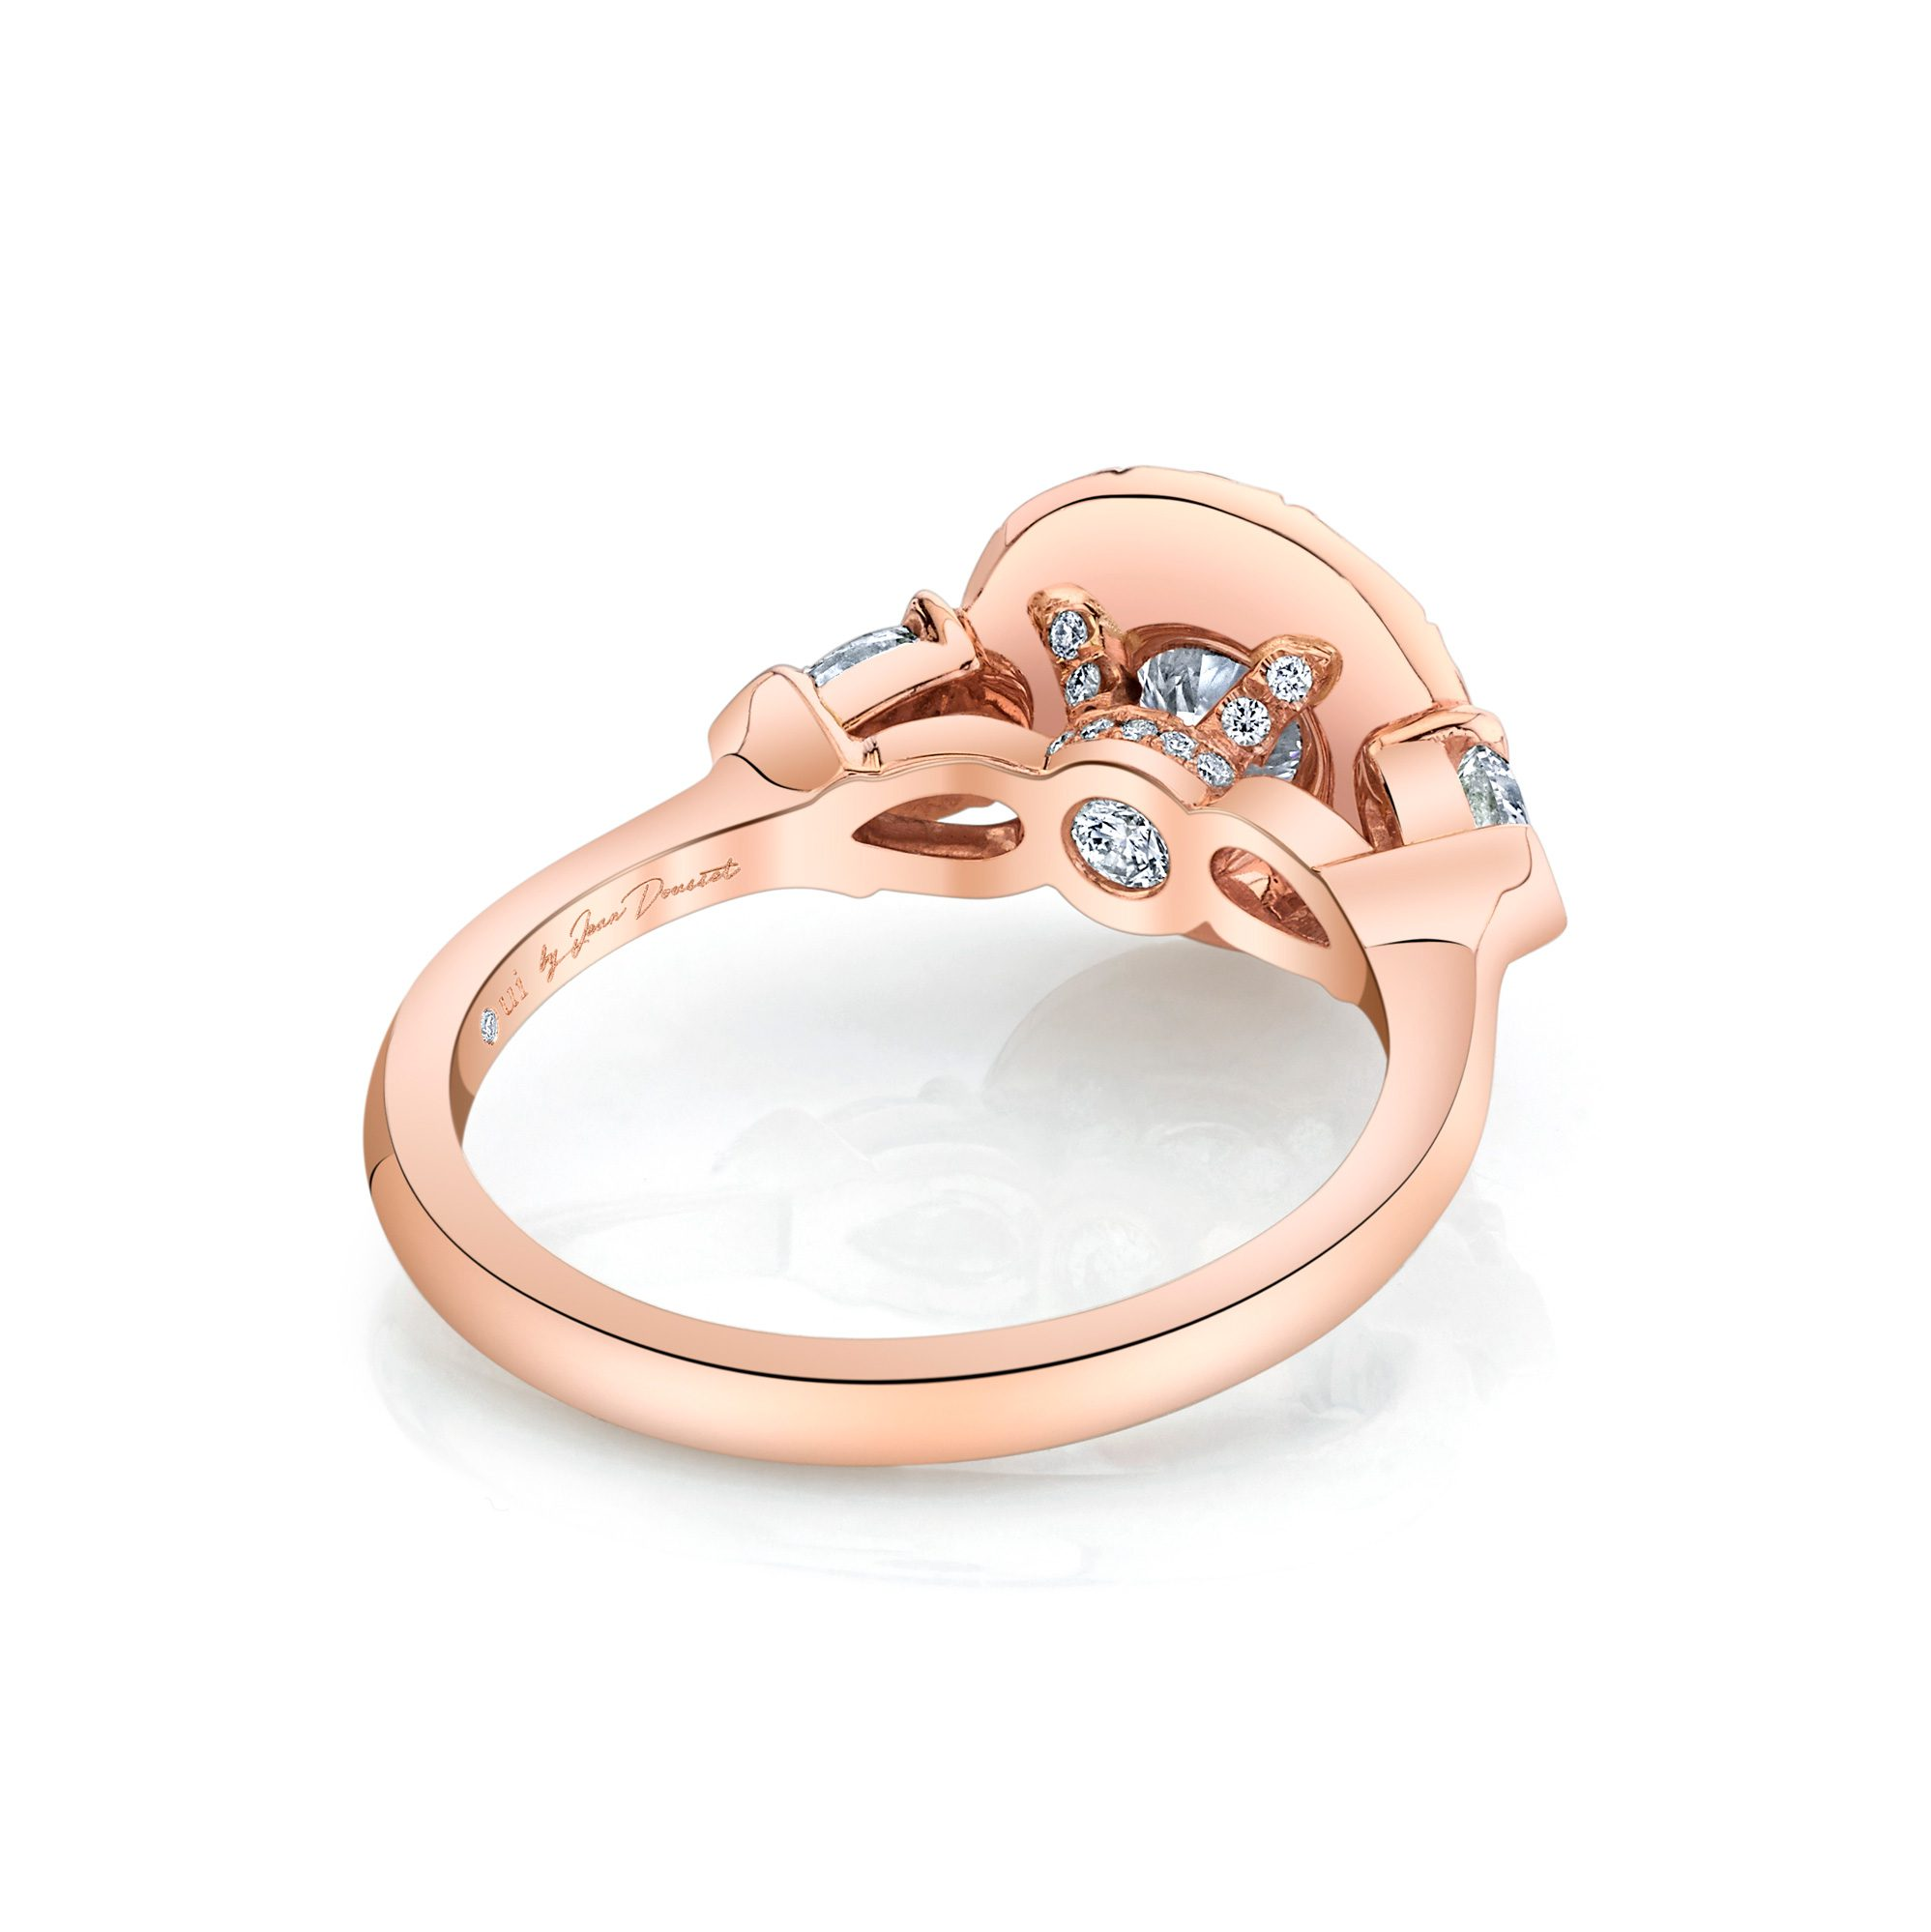 Clementine Round Brilliant Seamless Solitaire® Three Stone Engagement Ring with pear-shaped diamond side stones in 18k Rose Gold Back View by Oui by Jean Dousset